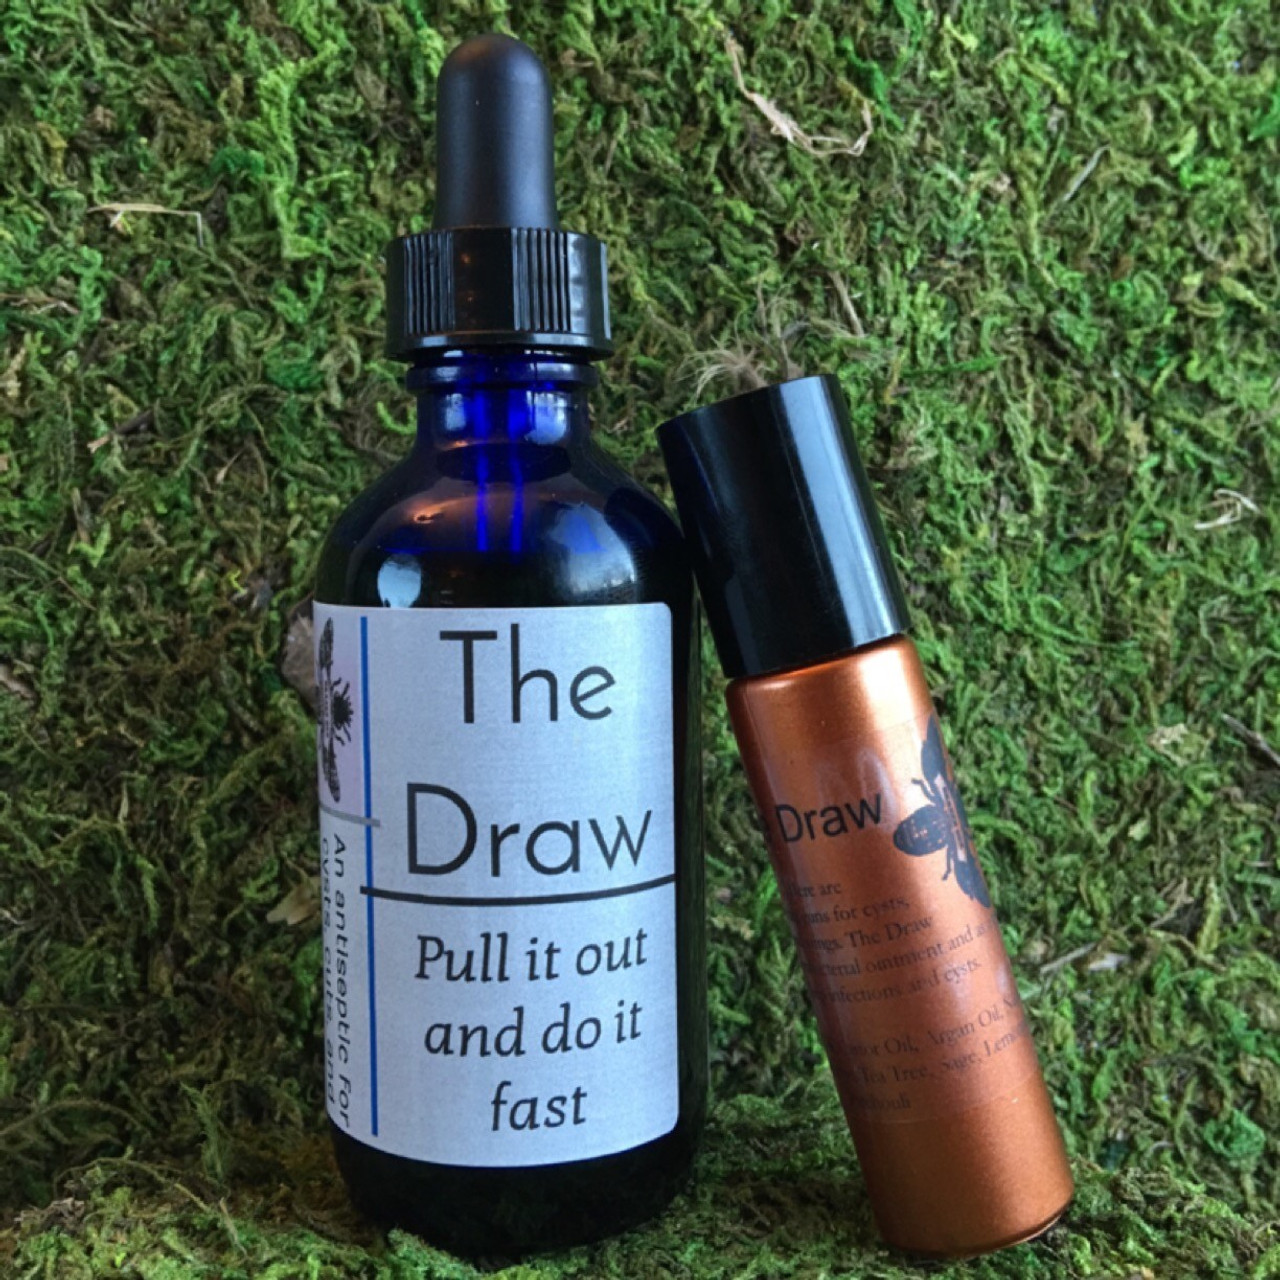 The Draw is for Cysts and infections and is also perfect anti-bacterial stick to carry for children's ouchies on the go. Ingredients: Hazelnut Oil, Castor Oil, Argan Oil, Neem Oil  Essential Oils: Tangerine, Tea Tree, Sage, Lemongrass, Patchouli